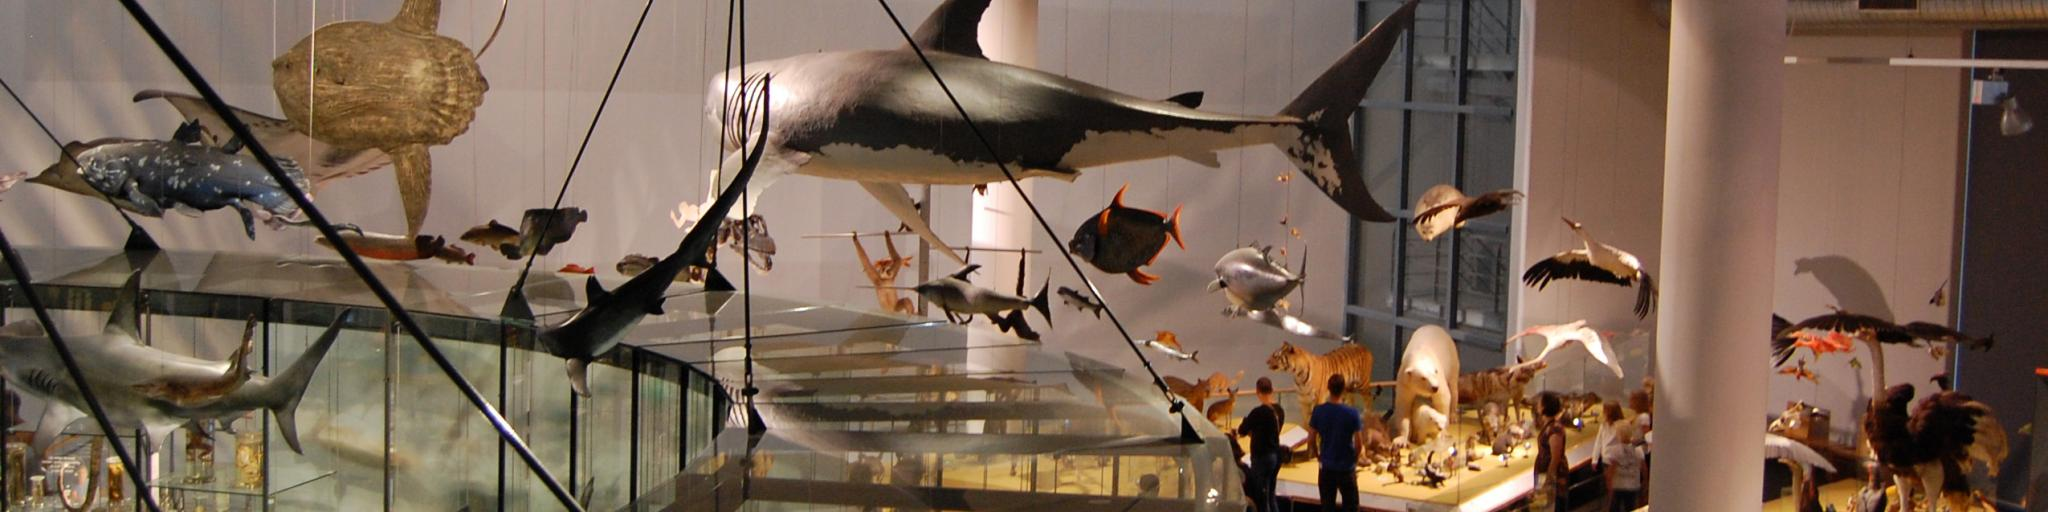 Models of sharks, whales, birds and other wildlife on display in the Naturalis Museum